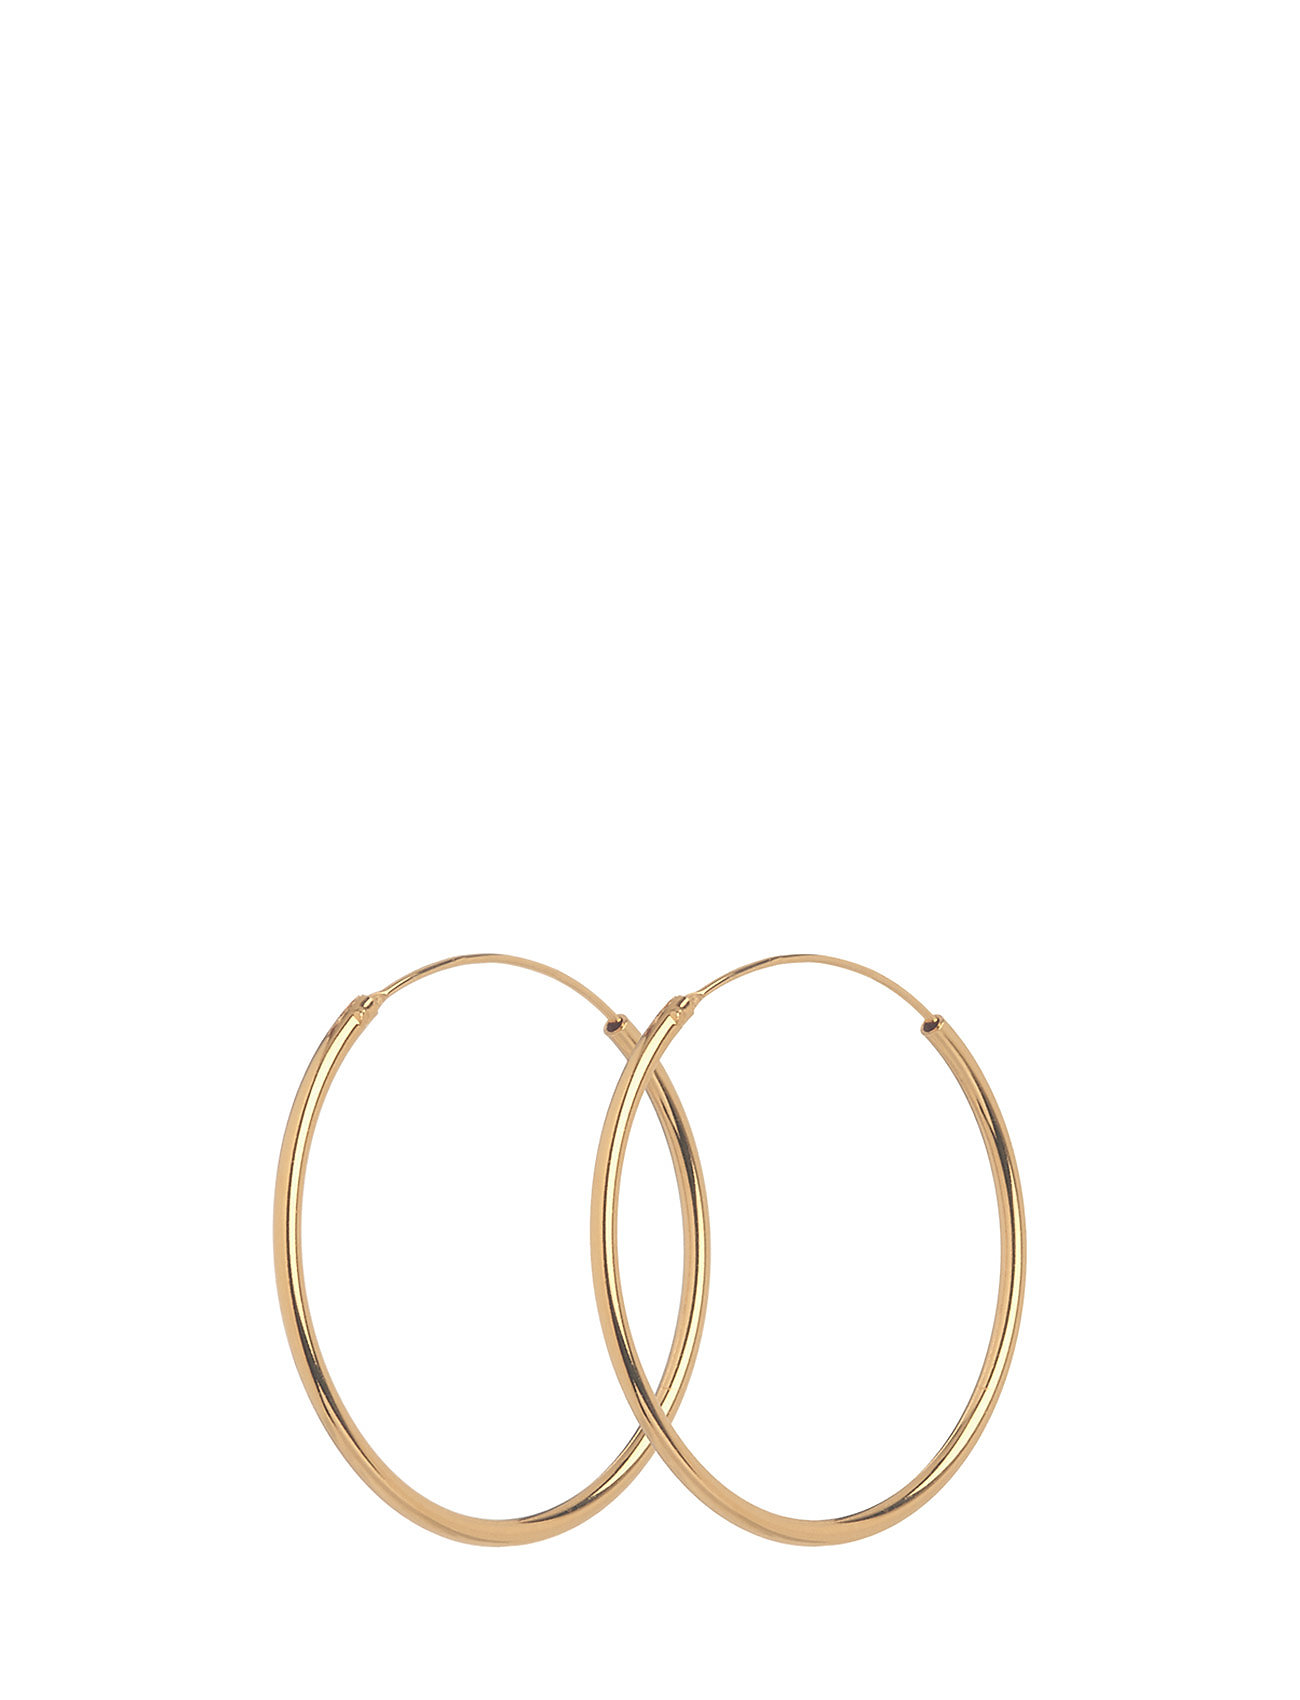 Pernille Corydon Plain Hoop size 30 mm - GOLD PLATED